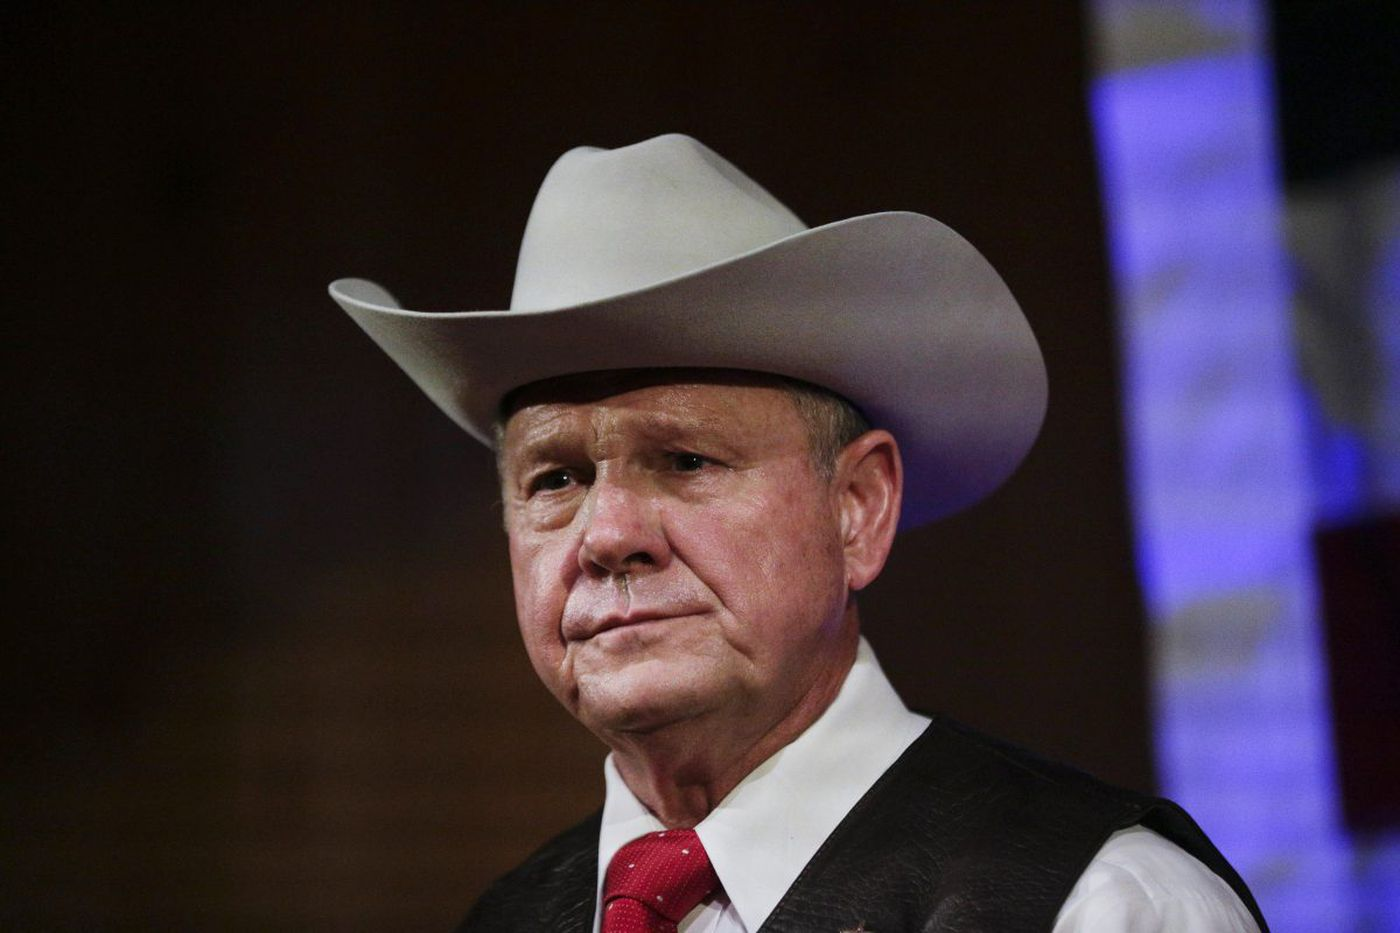 Accusations against Roy Moore just added fuel to the LGBT community's fire | Opinion